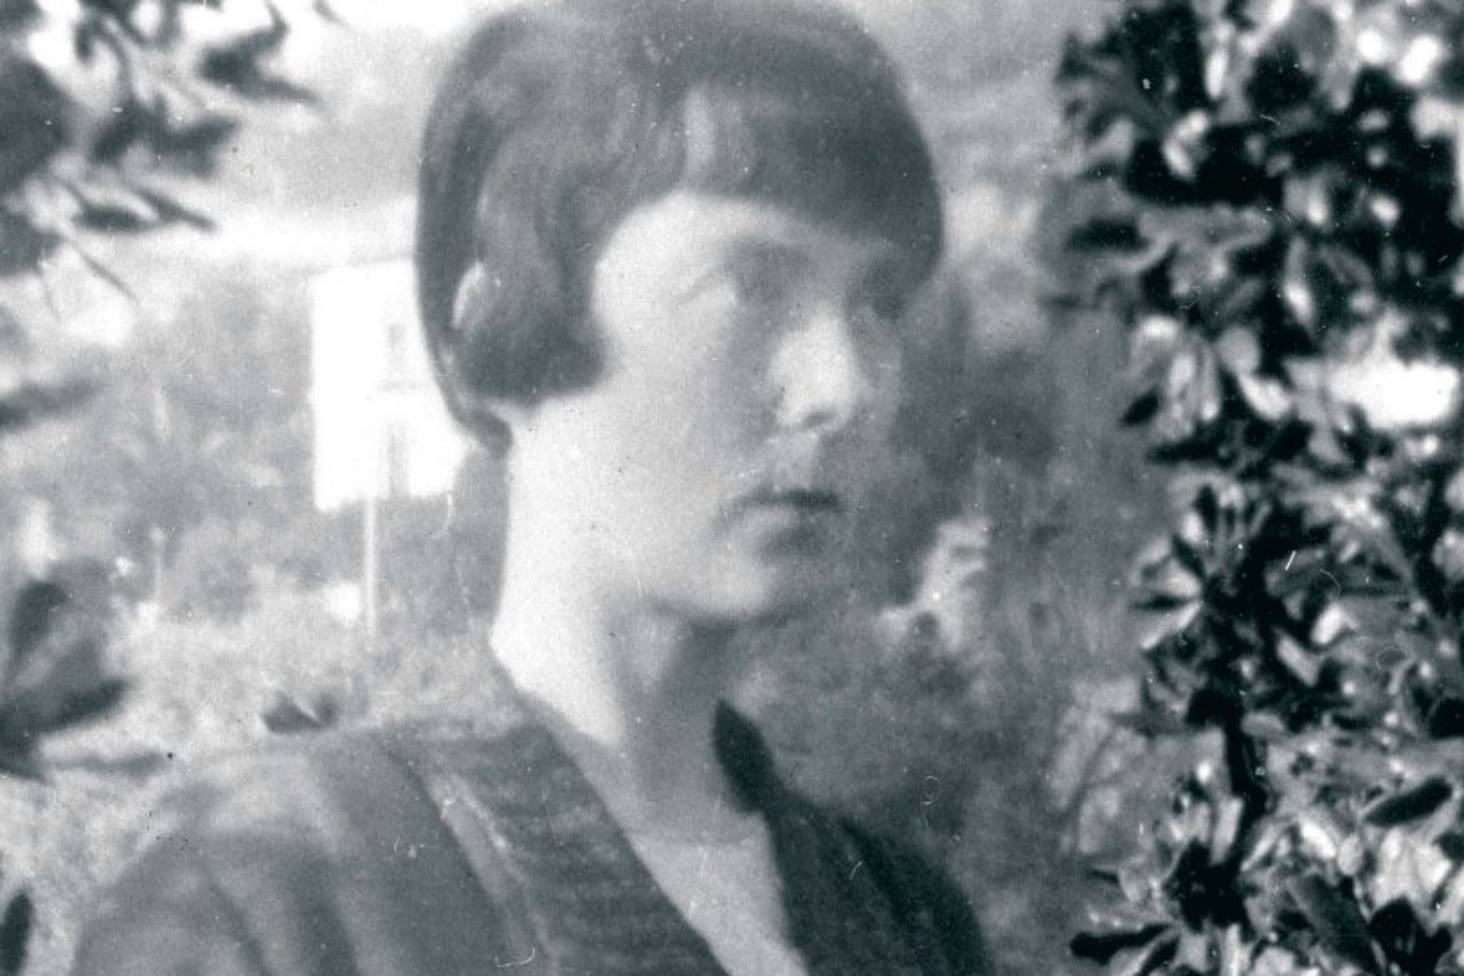 Flowers and plants of Katherine Mansfield's world | Stuff co nz